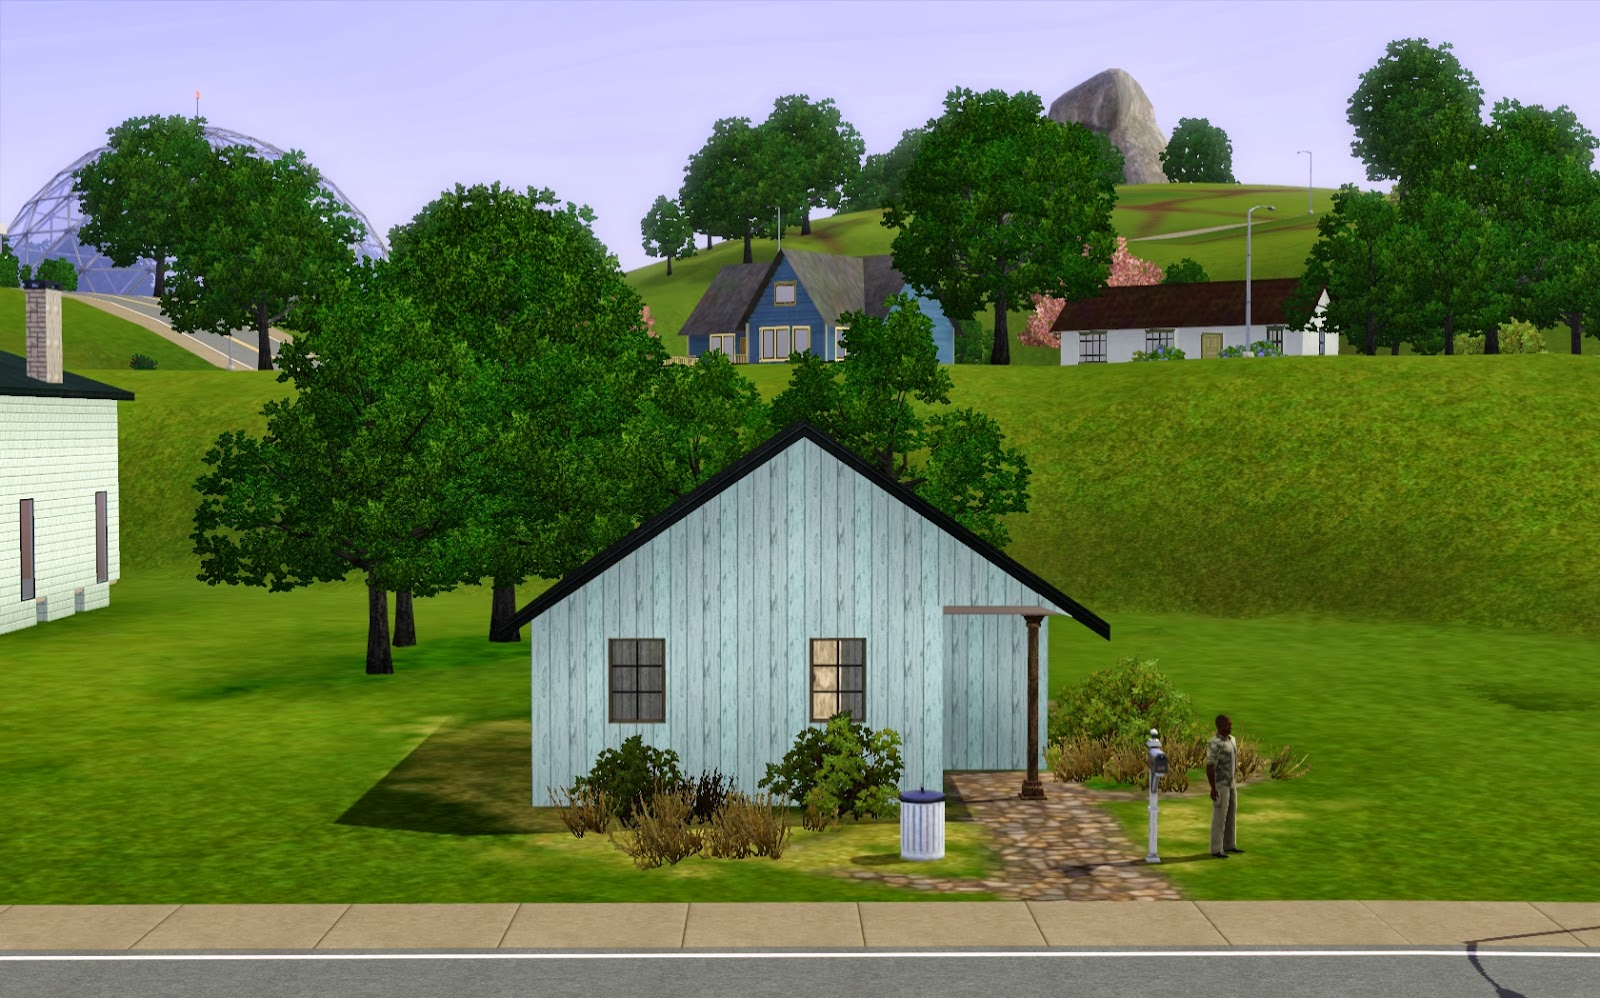 summer s little sims 3 garden barnacle bay list of houses rh sims3 garden blogspot com